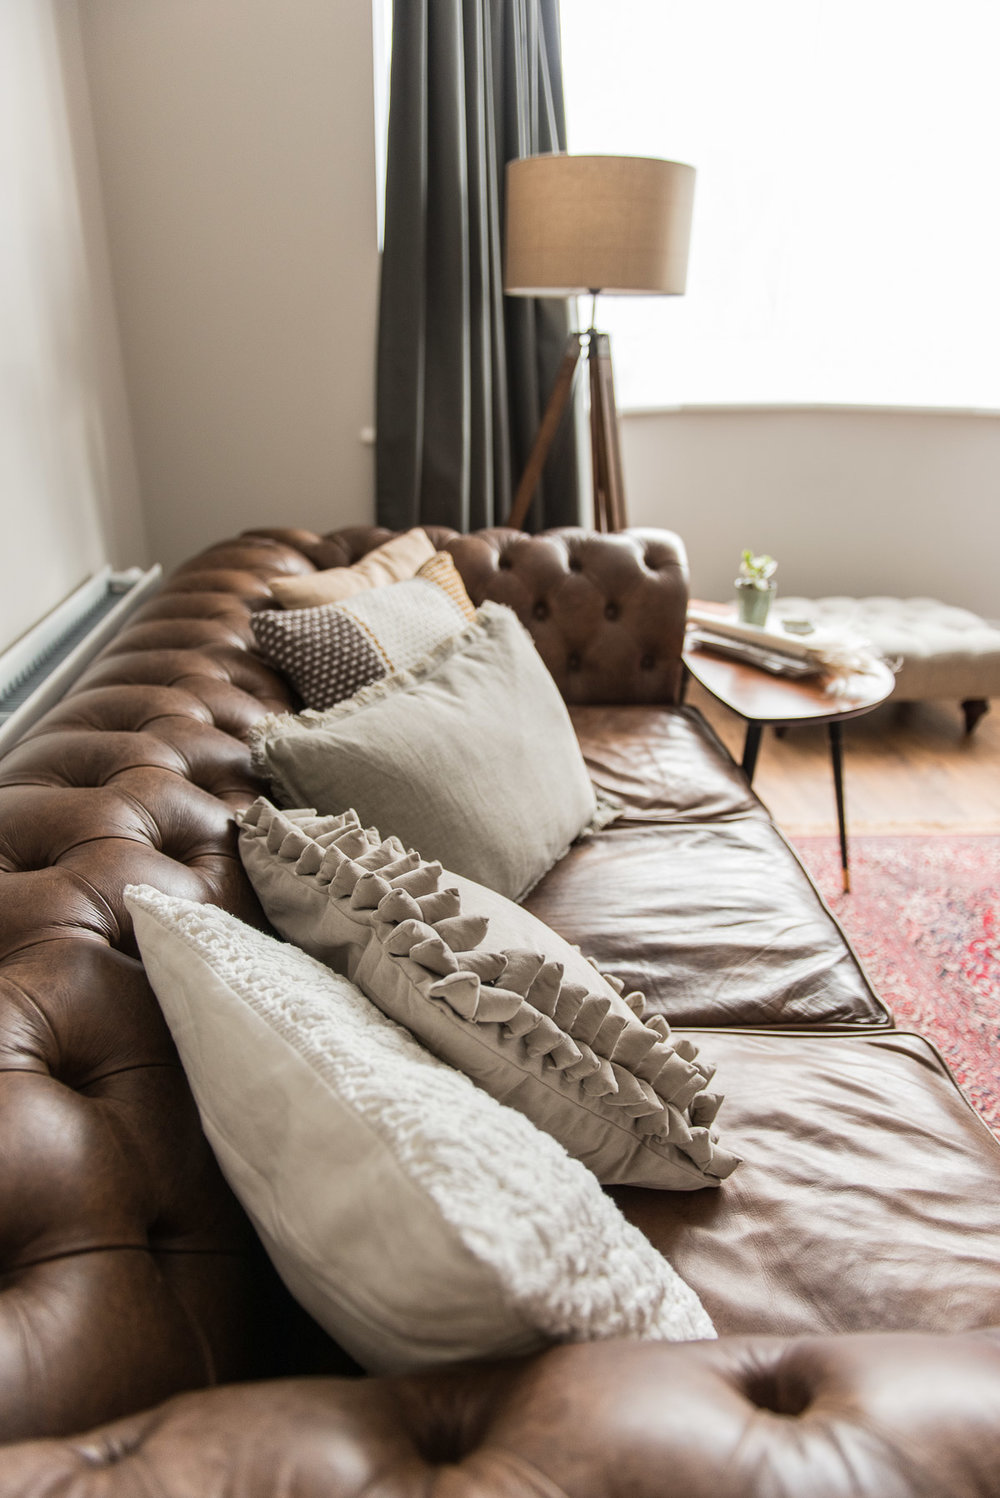 A stylist's guide to arranging your Modern Famhouse cushions